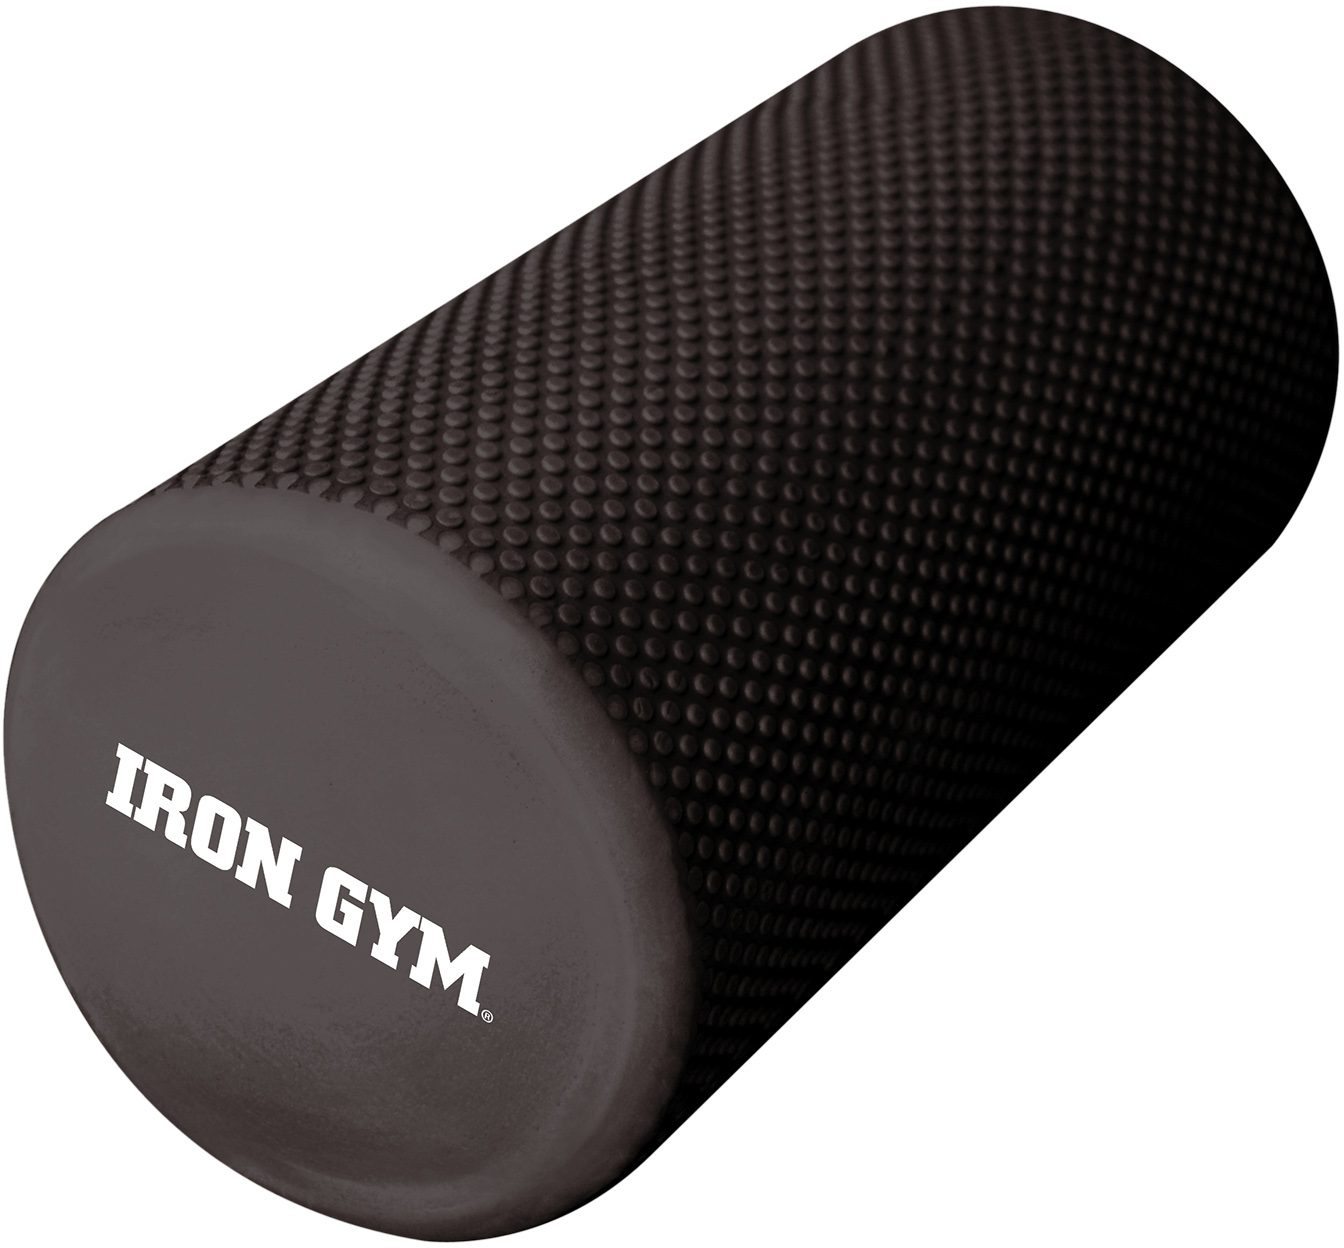 IRON GYM Massagerolle